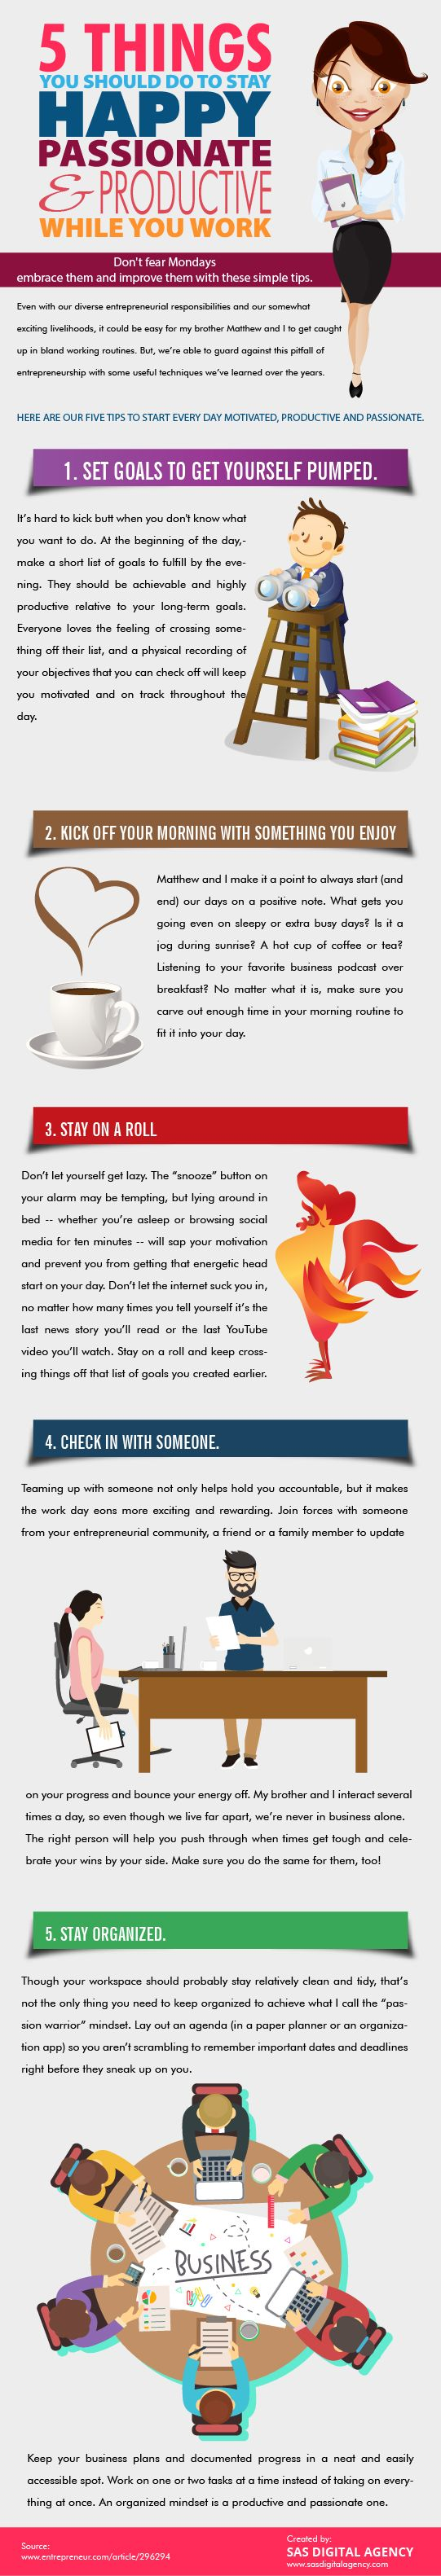 5 Things You Should Do To Stay Happy And Productive While You Work Infographic - https://elearninginfographics.com/stay-happy-and-productive-while-you-work-infographic-5-things/